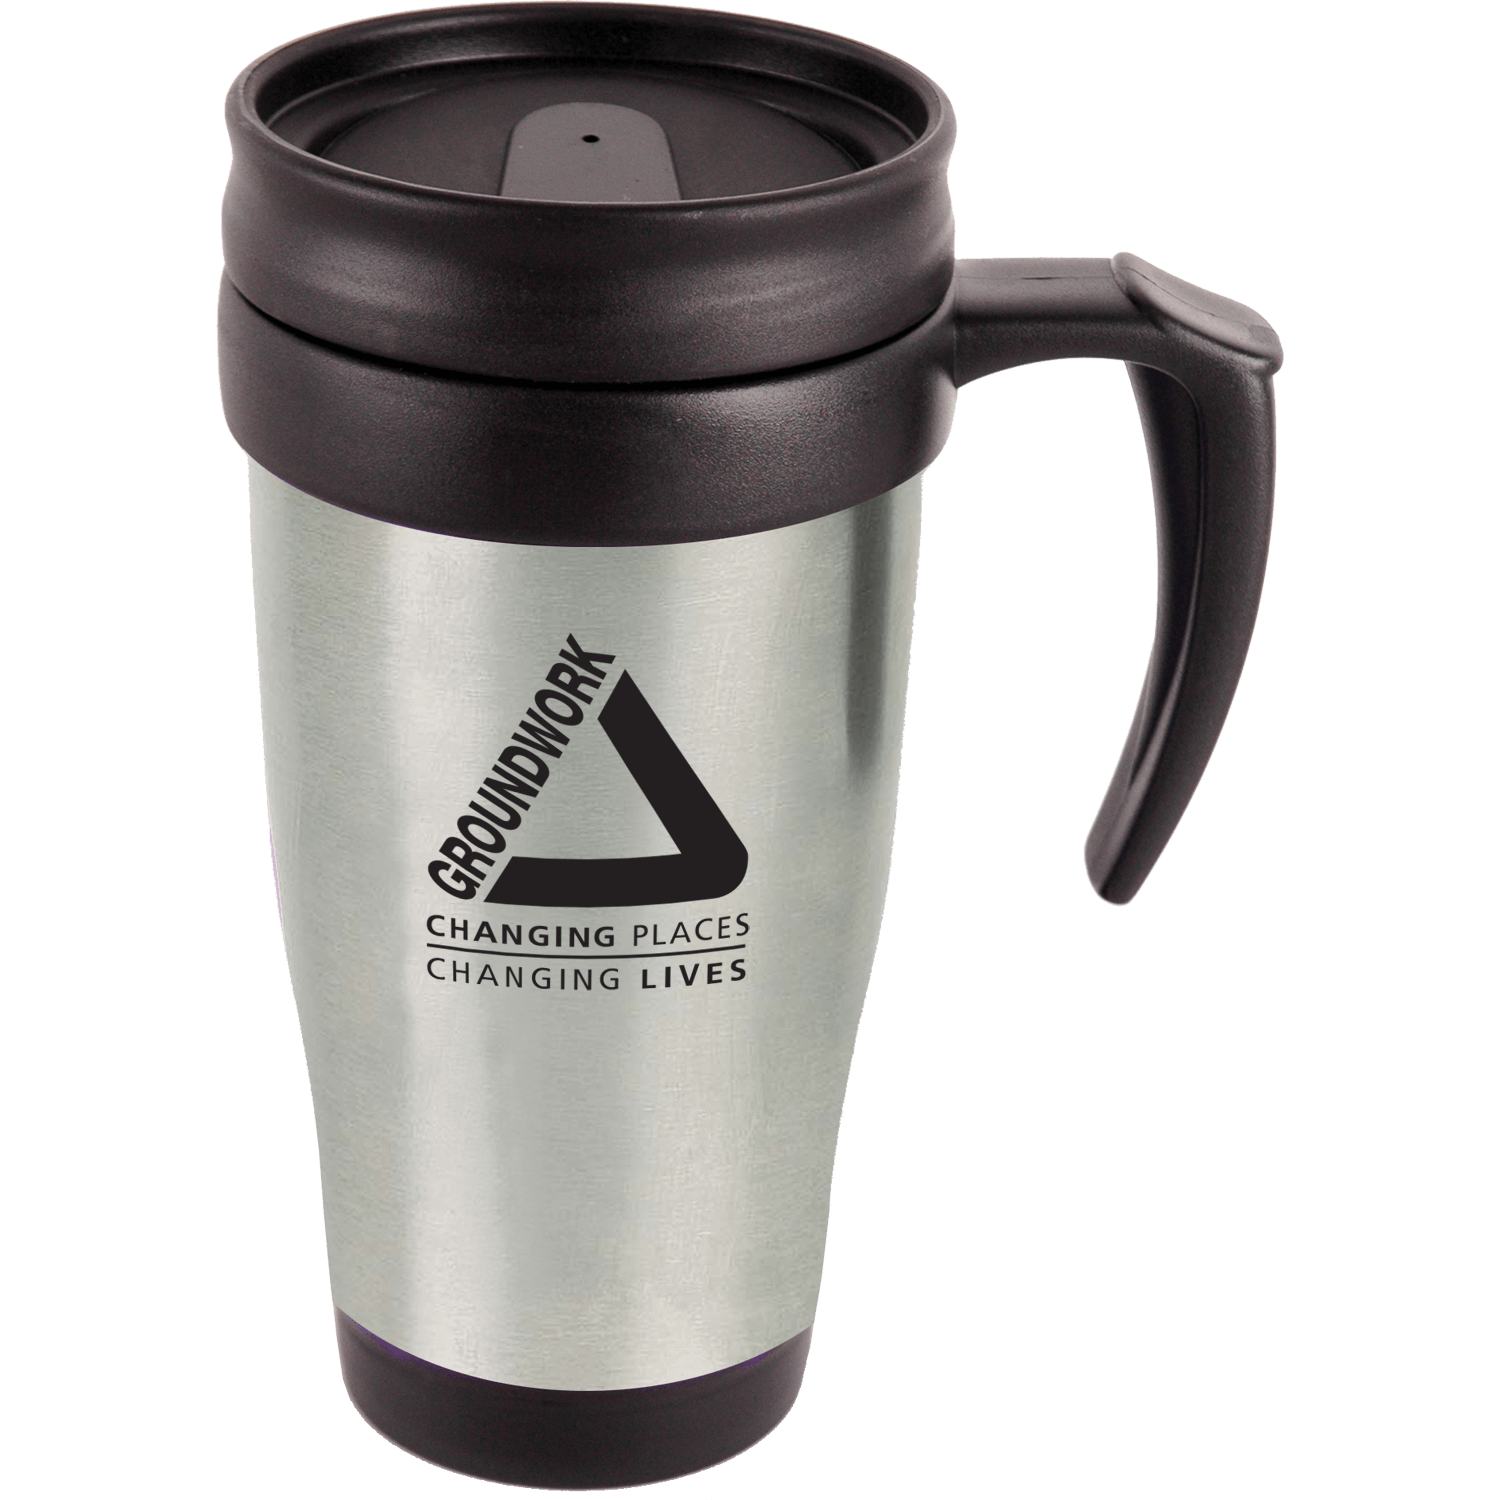 Washington Stainless Steel Travel Mug